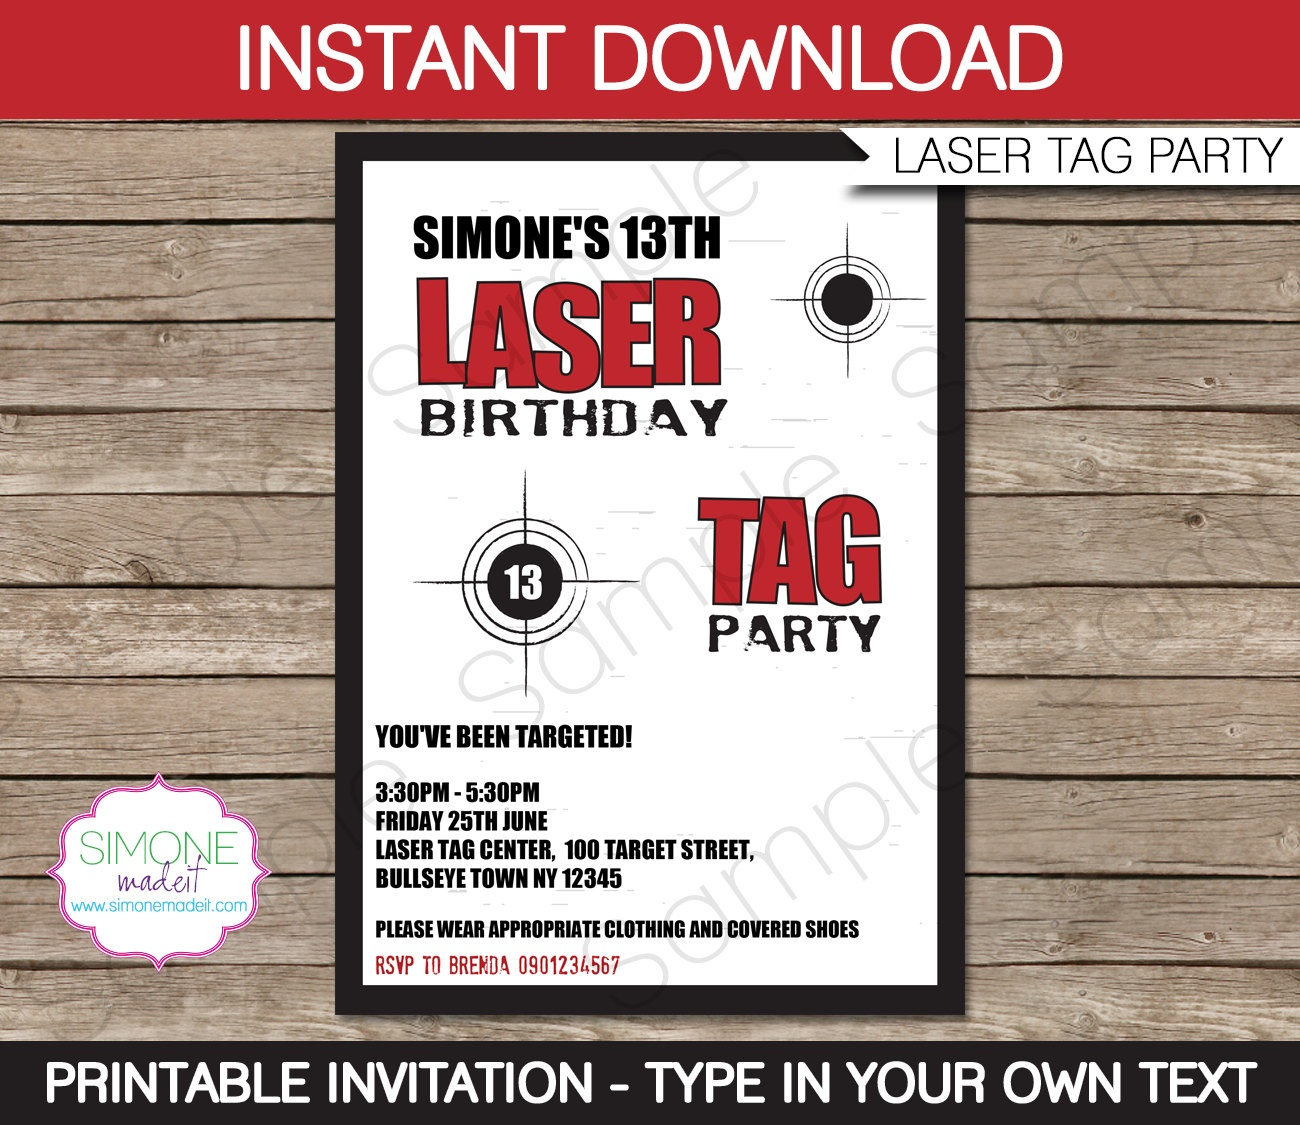 Laser Tag Birthday Invitations Free Printable – Happy Holidays! - Free Printable Laser Tag Invitation Template